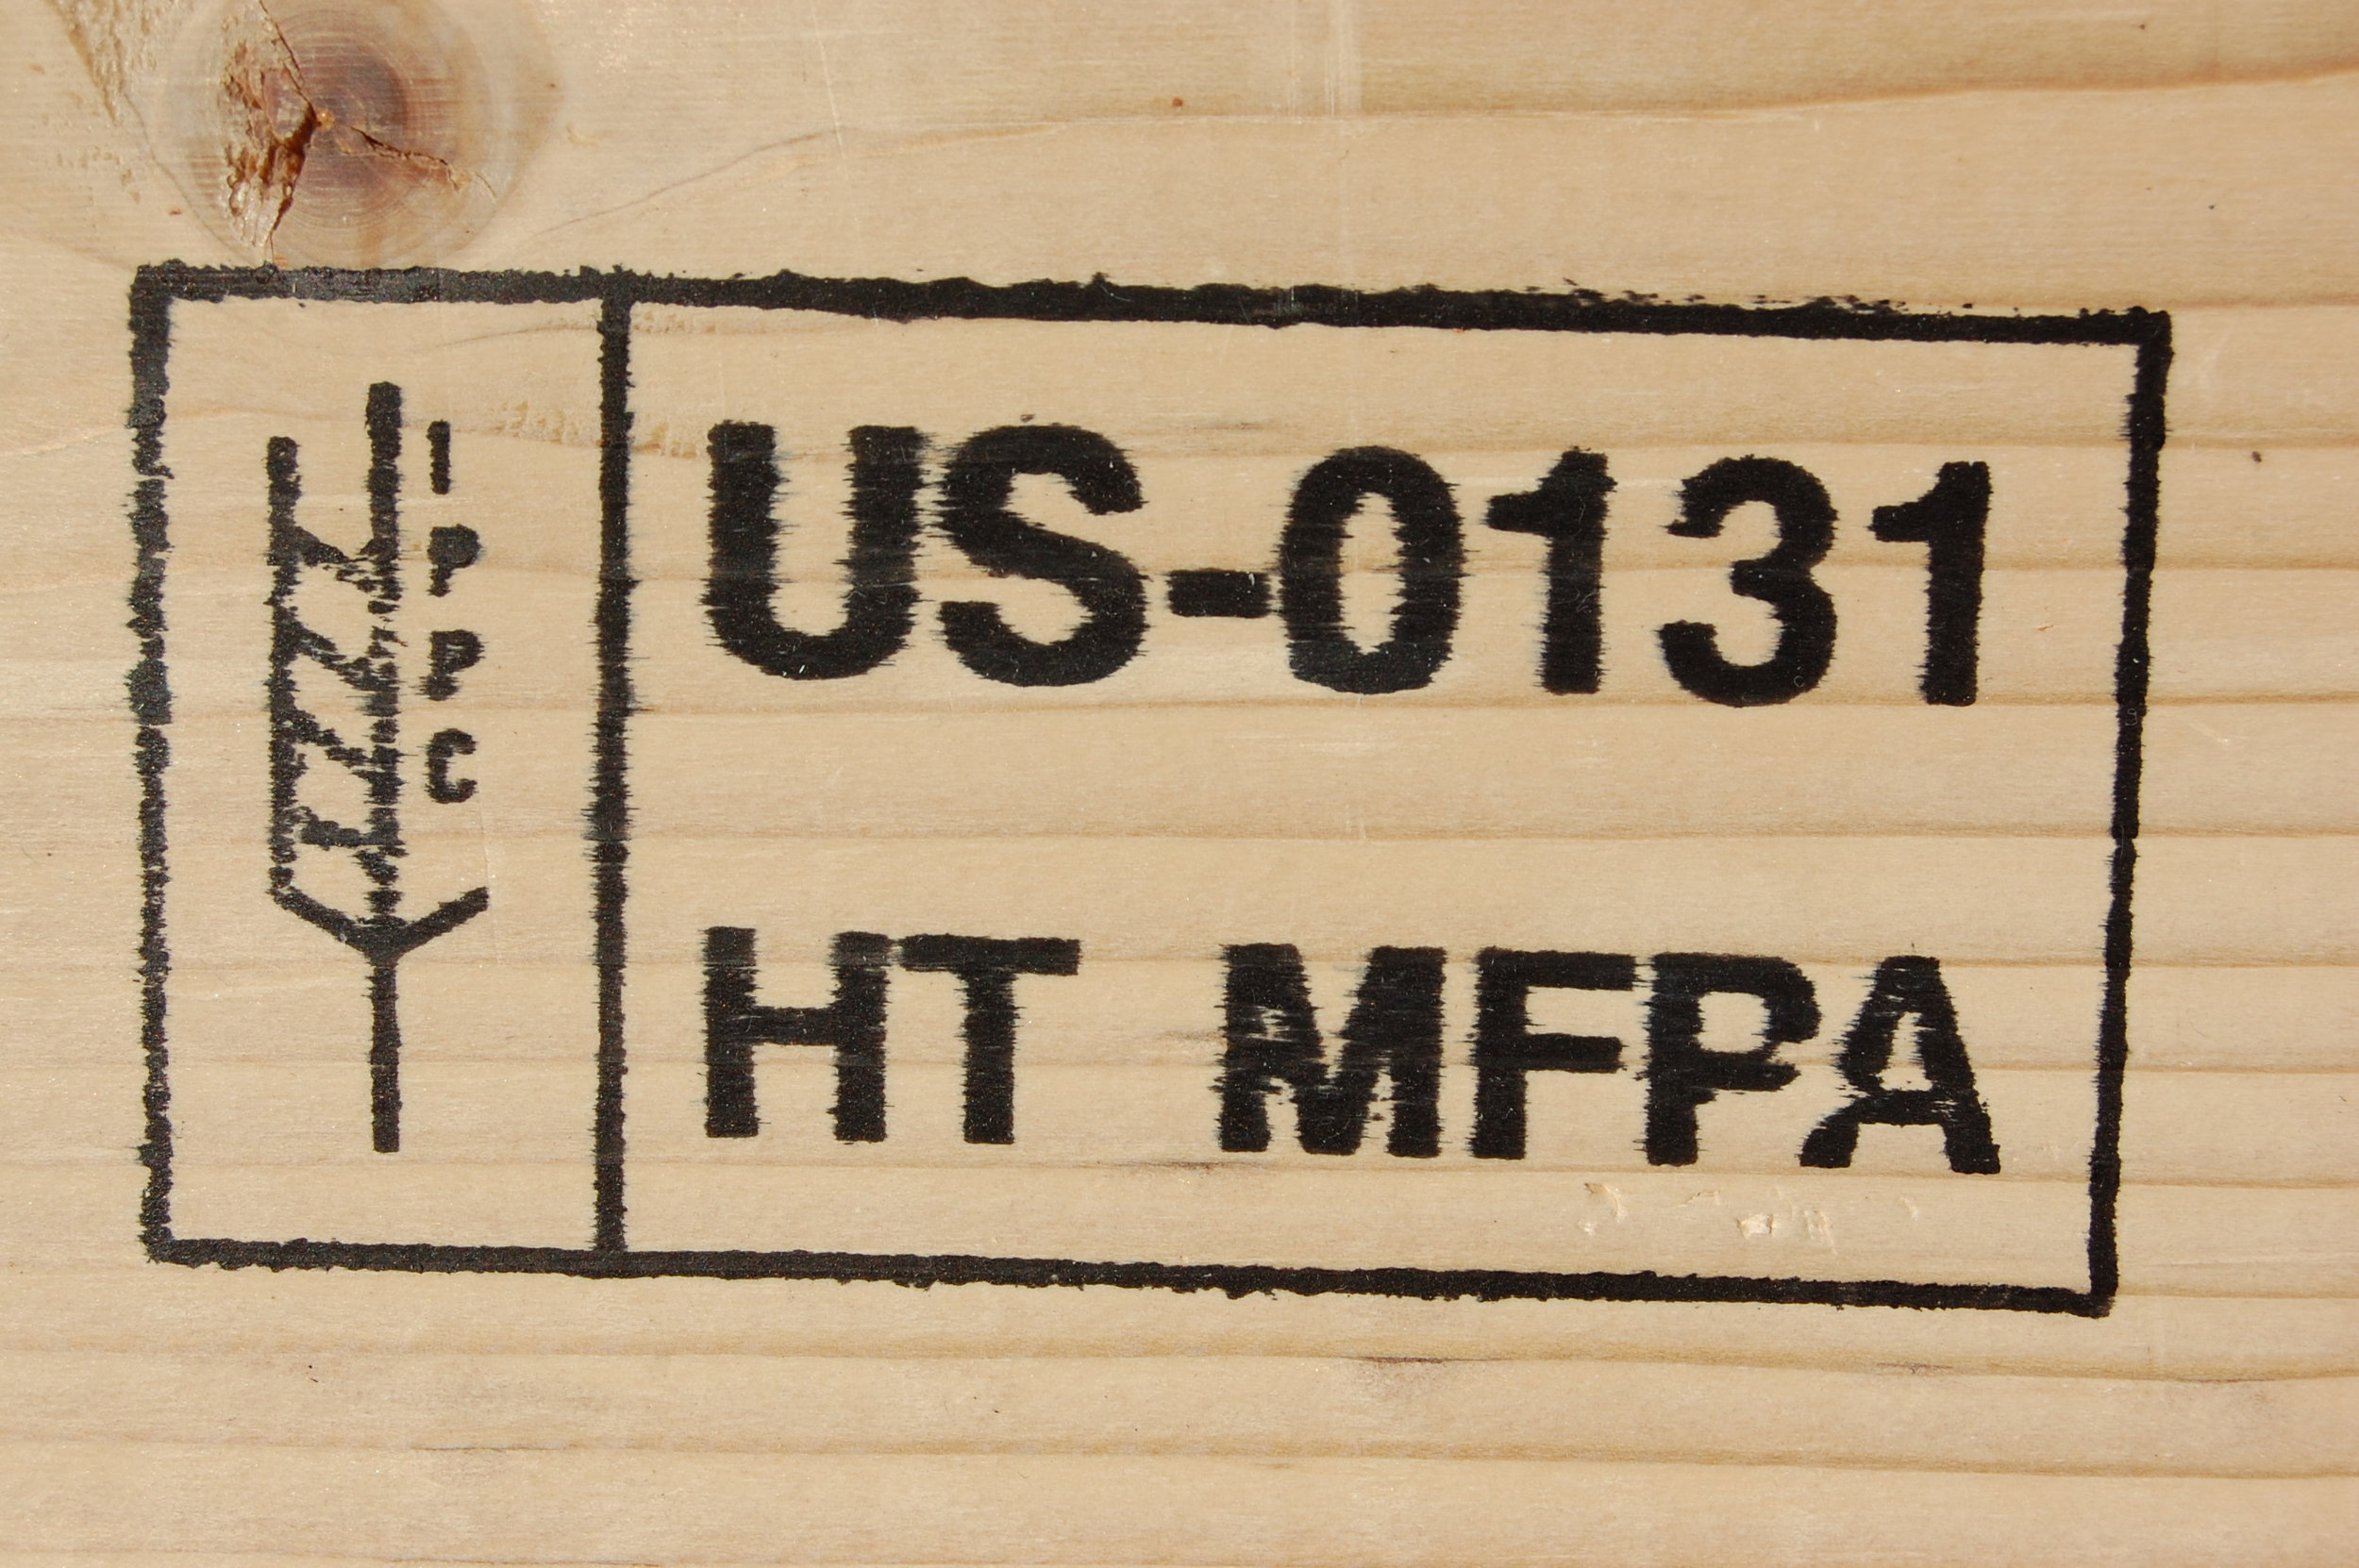 The UN's stamp of approval for treated wooden container material